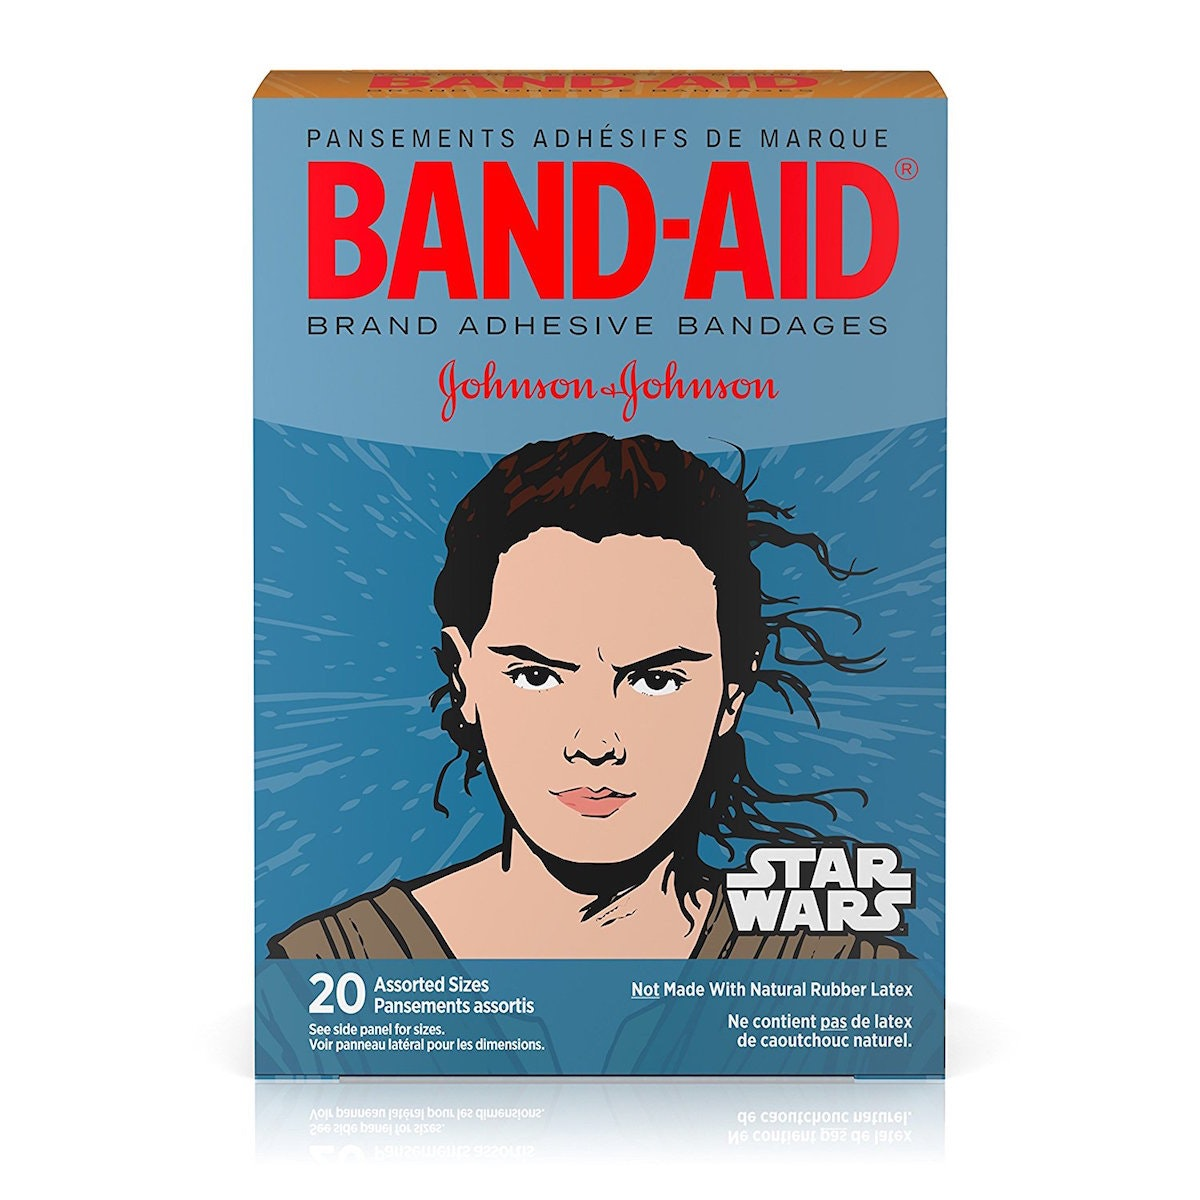 Star Wars character bandages for your post-battle ouchies